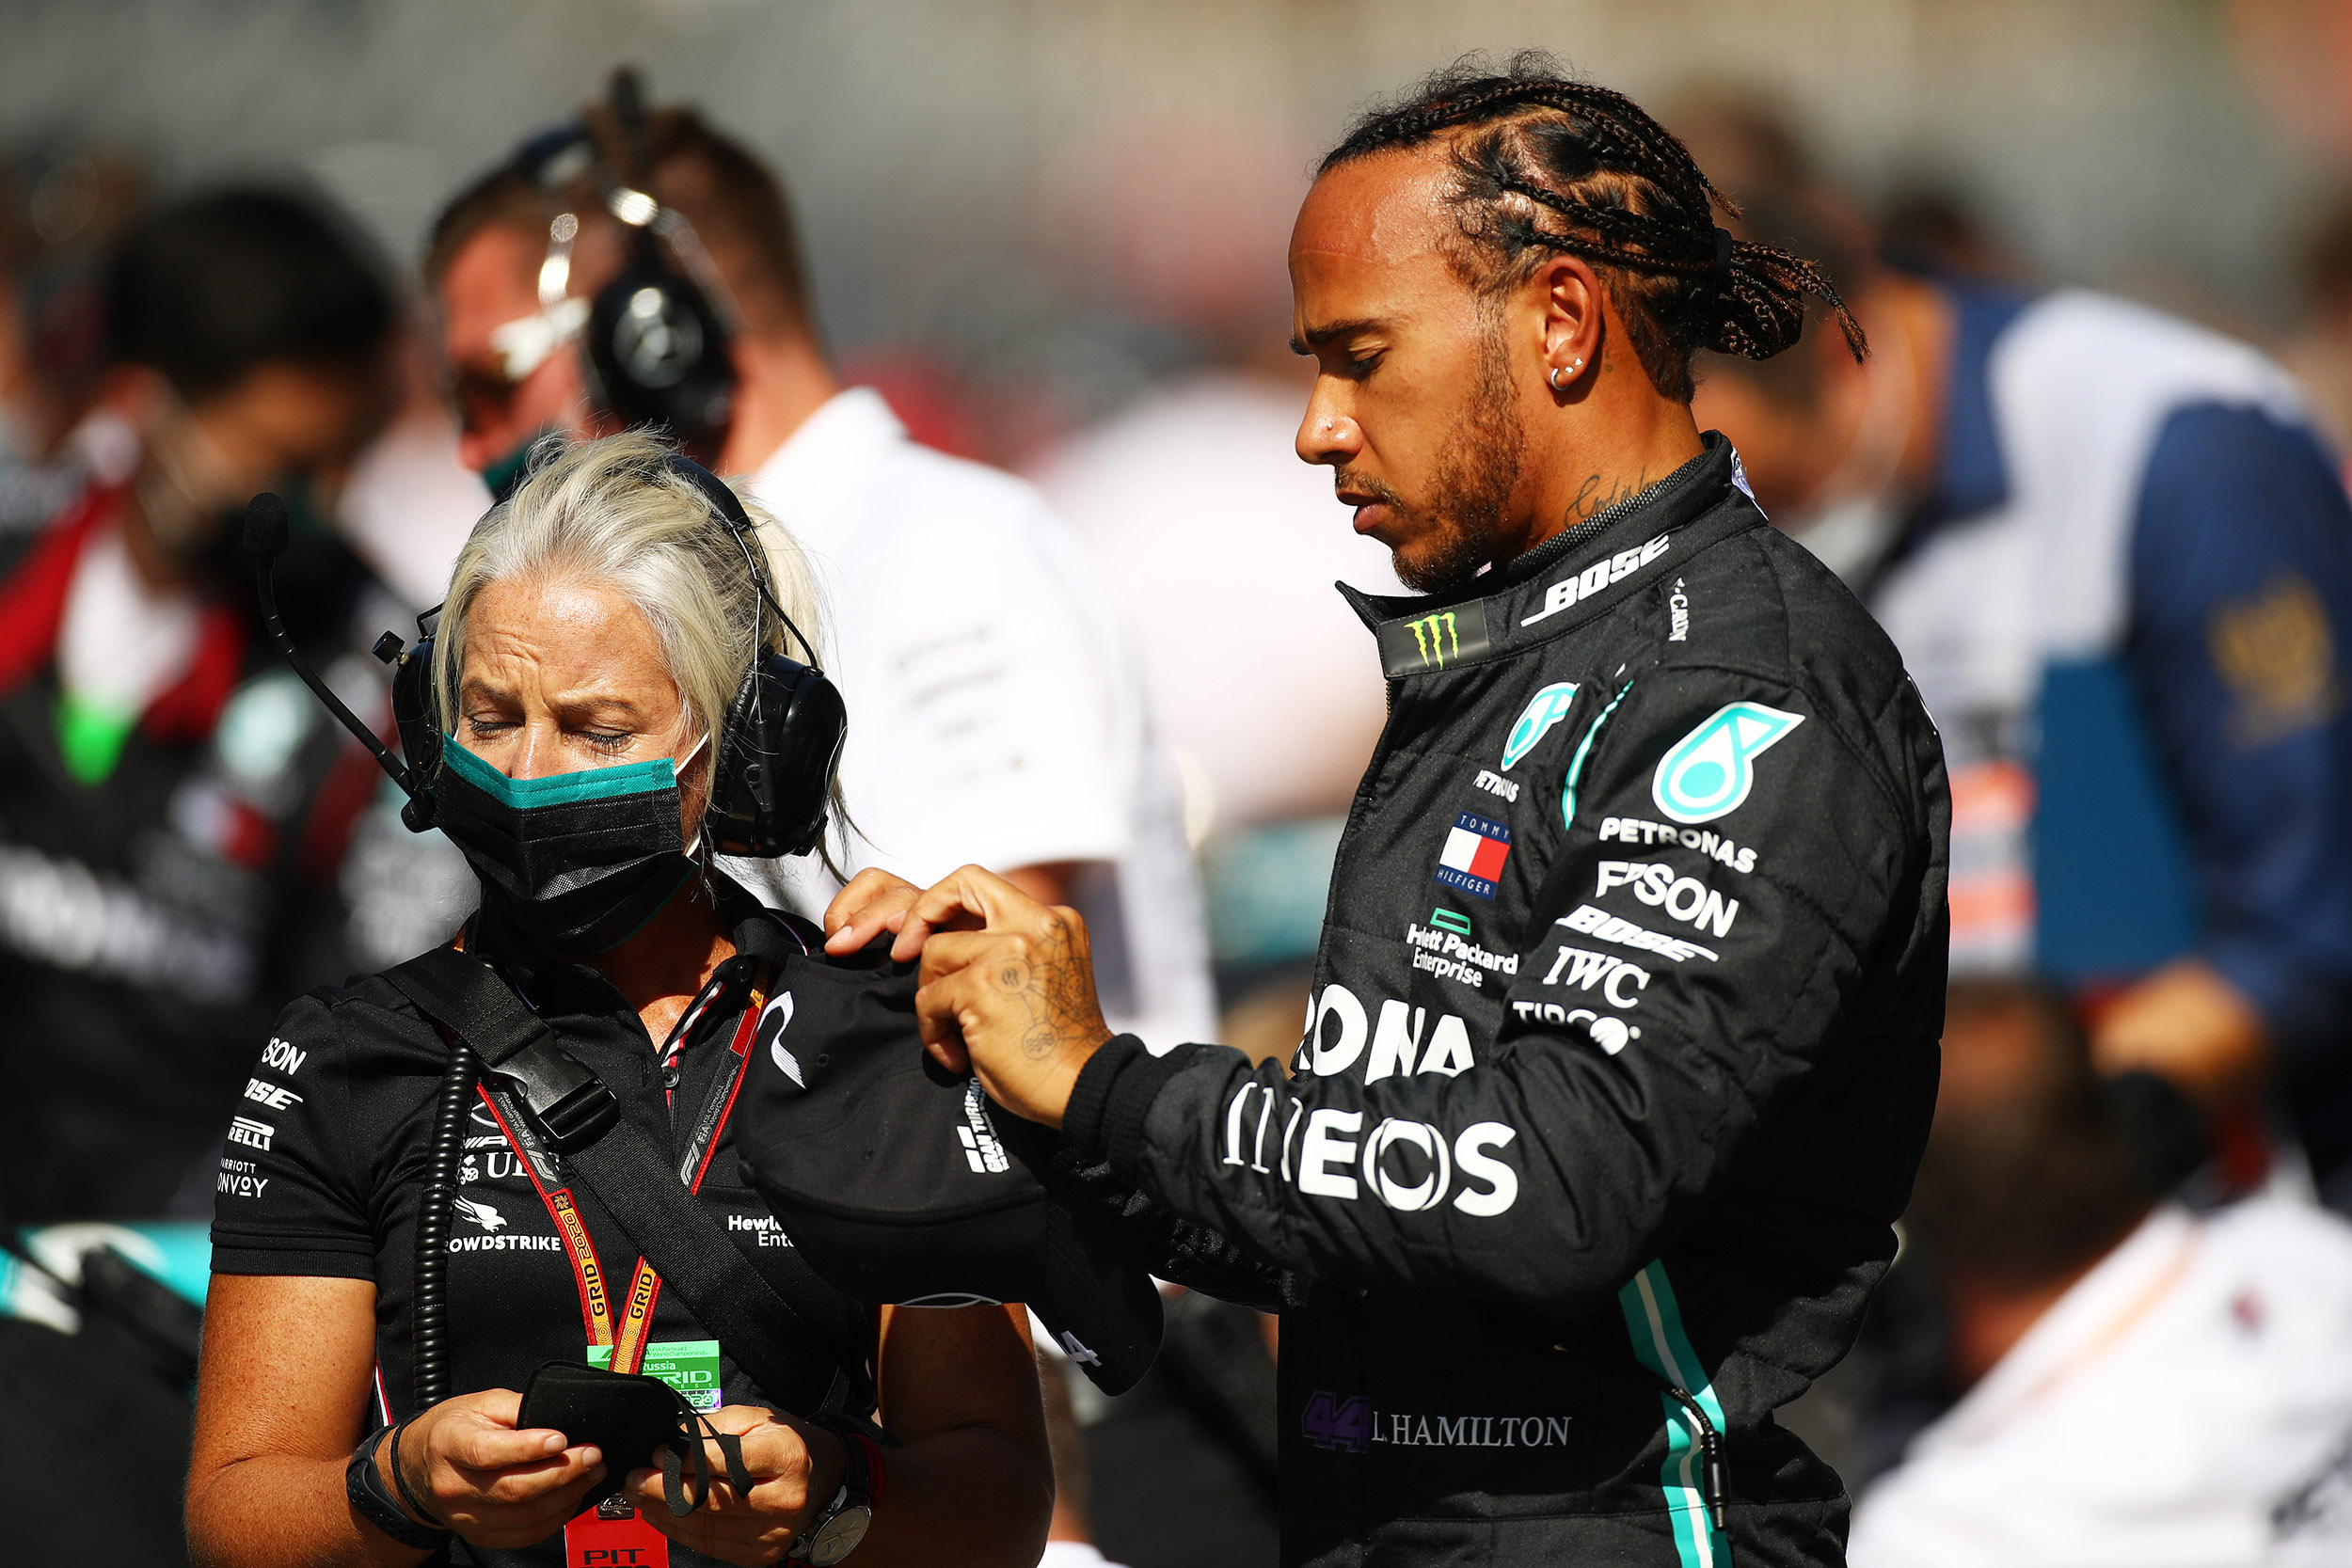 'They're trying to stop me,' says Lewis Hamilton after being handed a time penalty at the Russian GP